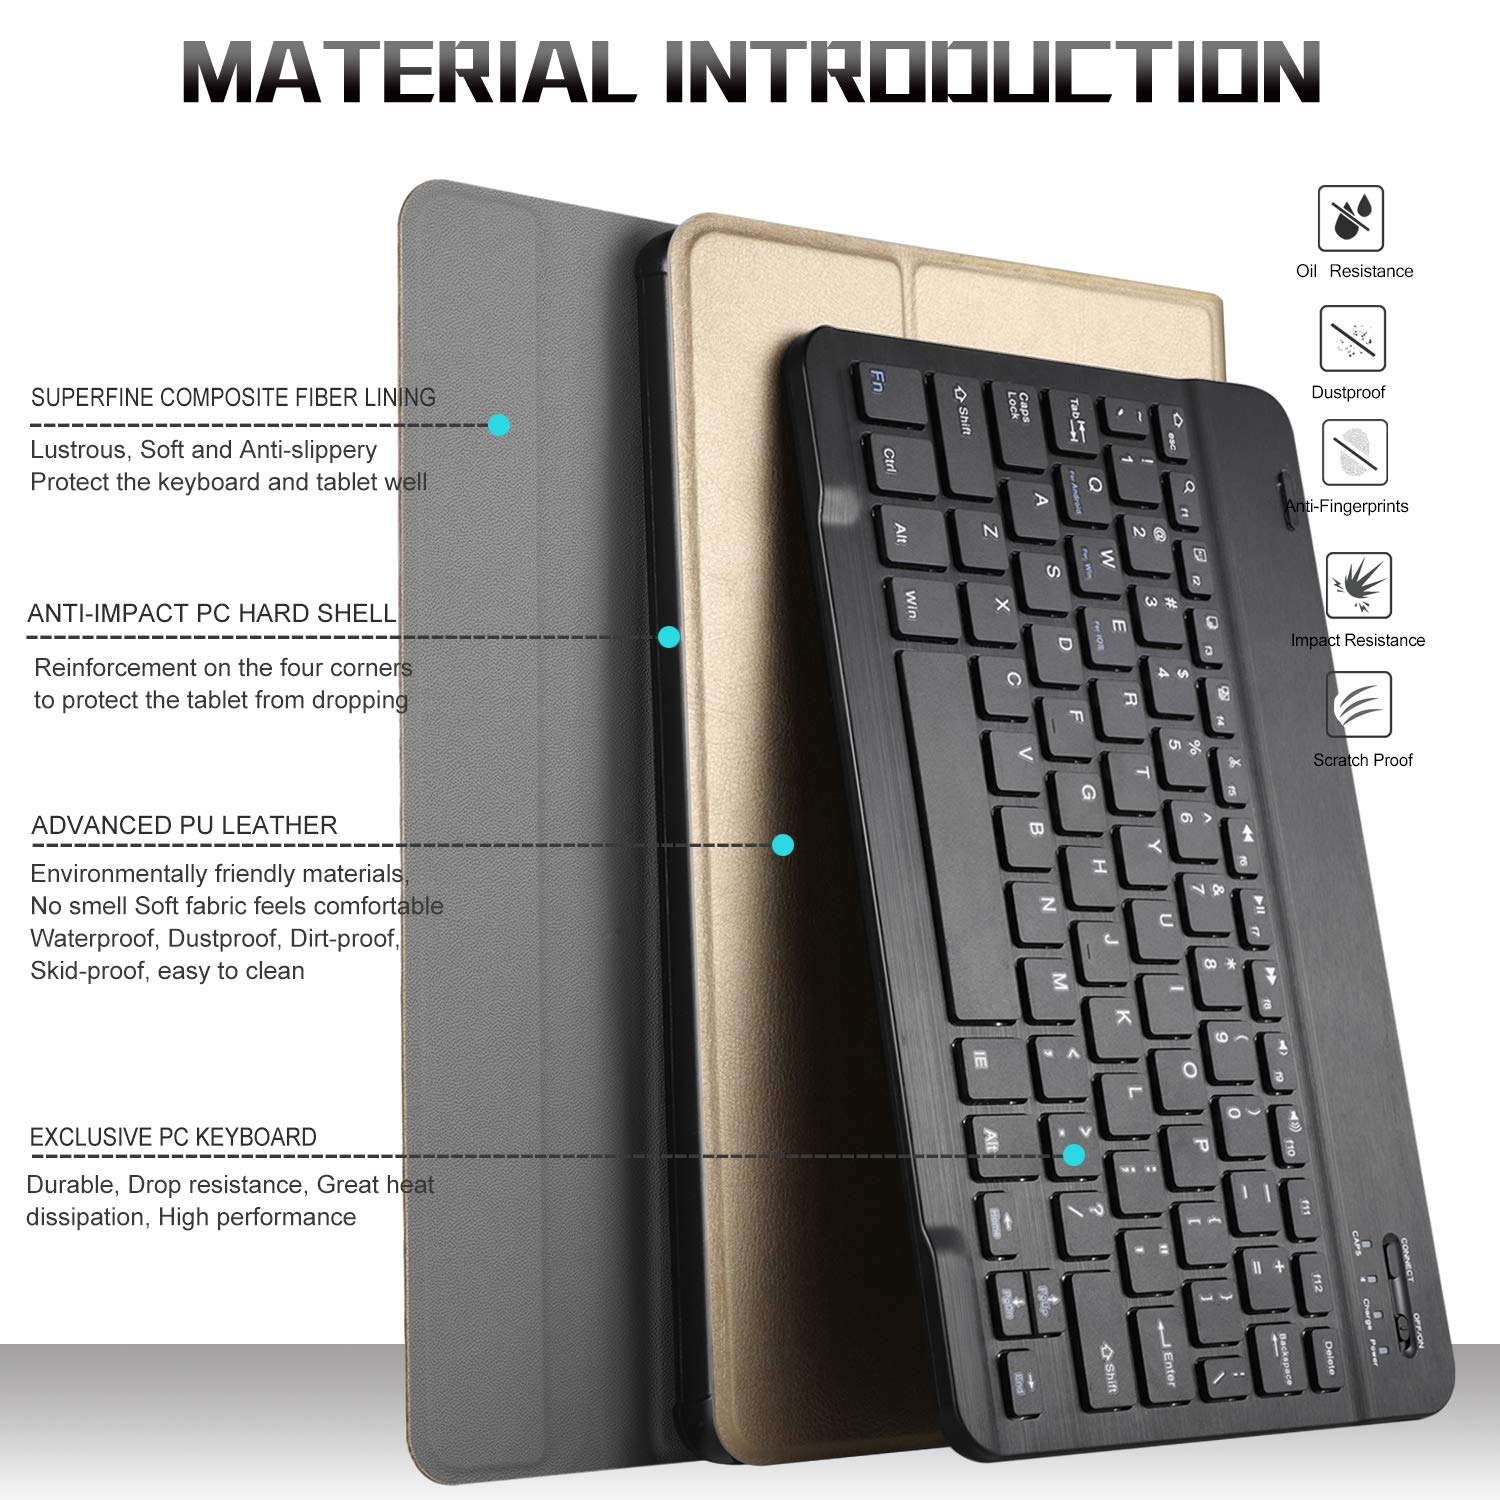 Amazon.com: IVSO Acer Chromebook Tab 10 Tablet Case with Keyboard - Ultra Lightweight Portfolio Detachable Wireless Keyboard Front Prop Stand Case/Cover for ...